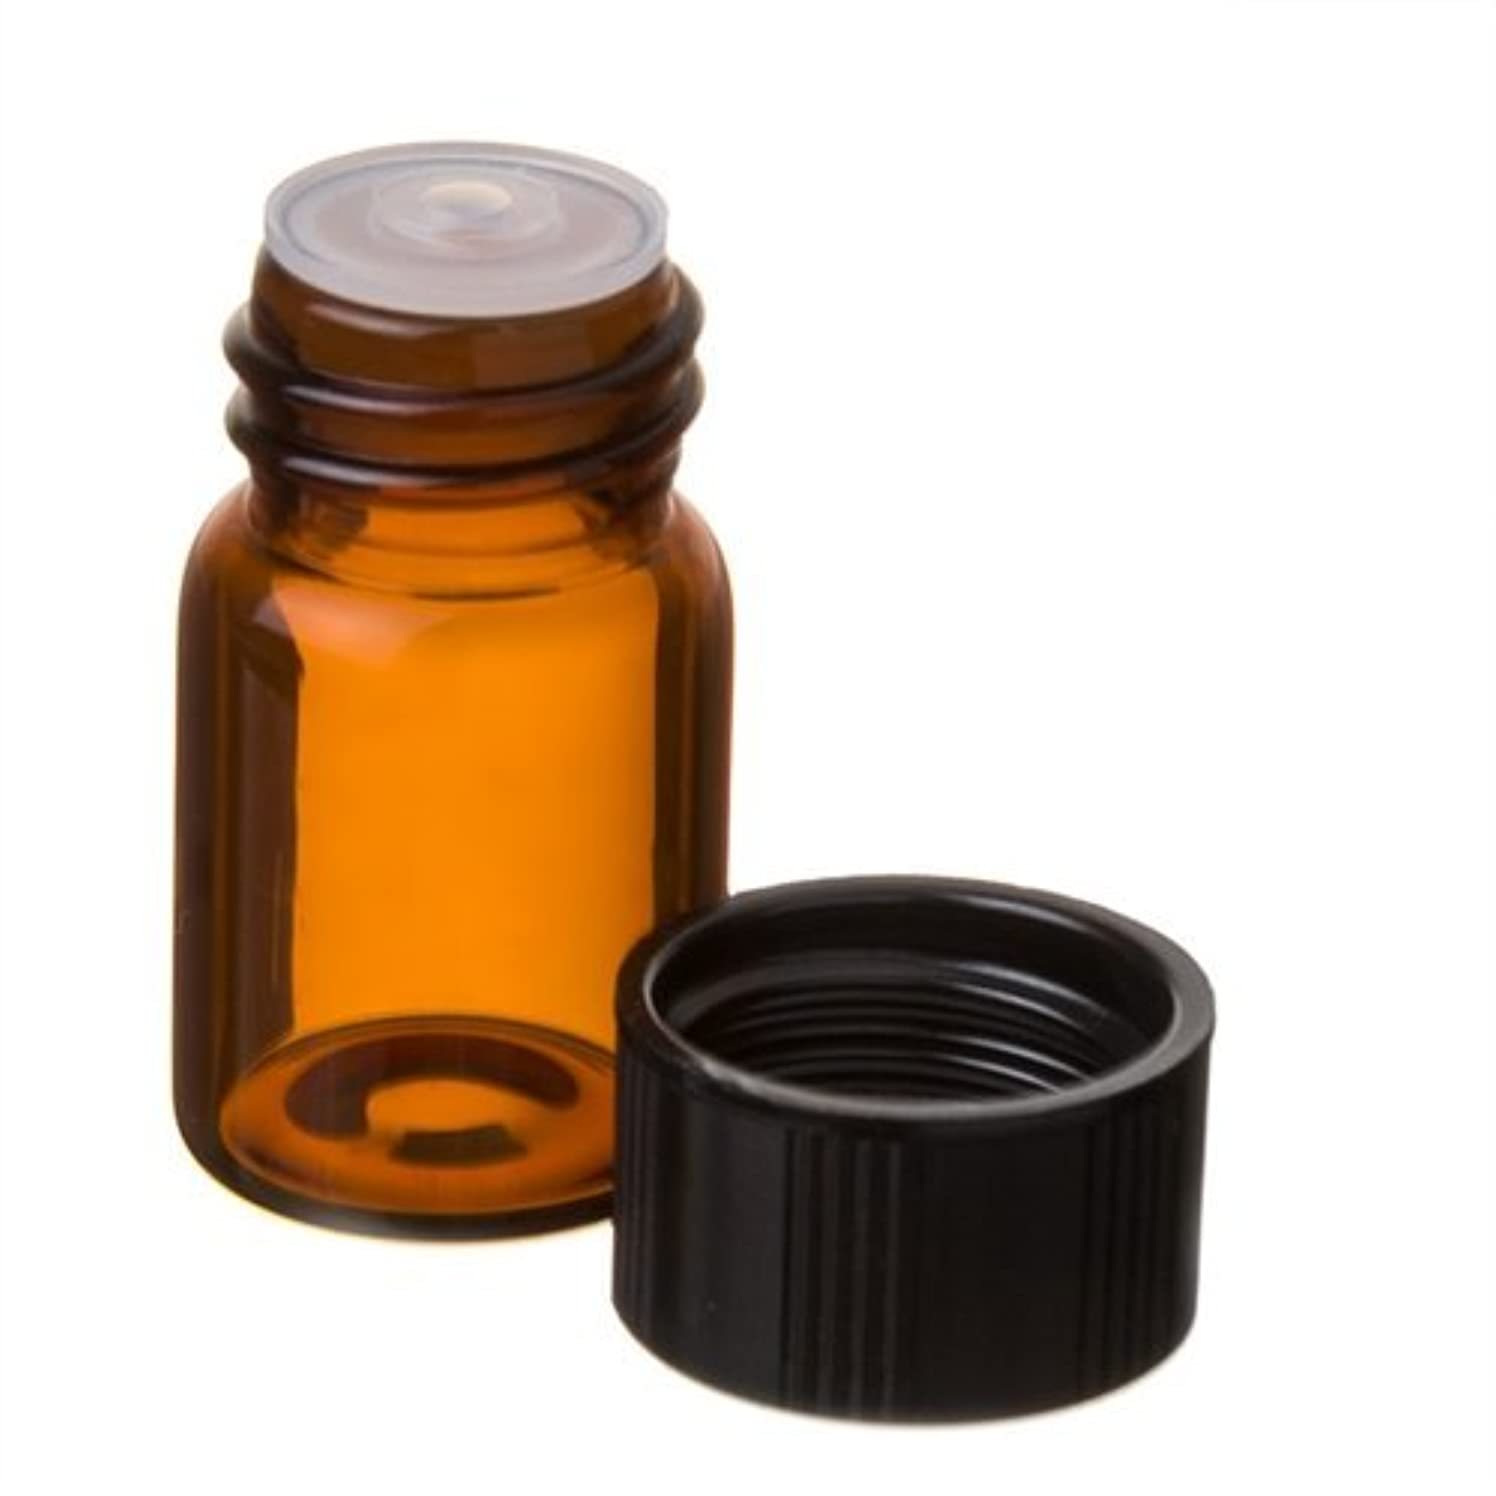 ピンク限られたアクセント5/8 Dram AMBER Glass Vial with Dropper Top for Essential Oils - Screw Cap w/Orifice Reducer - Pack of 12 Bulk...